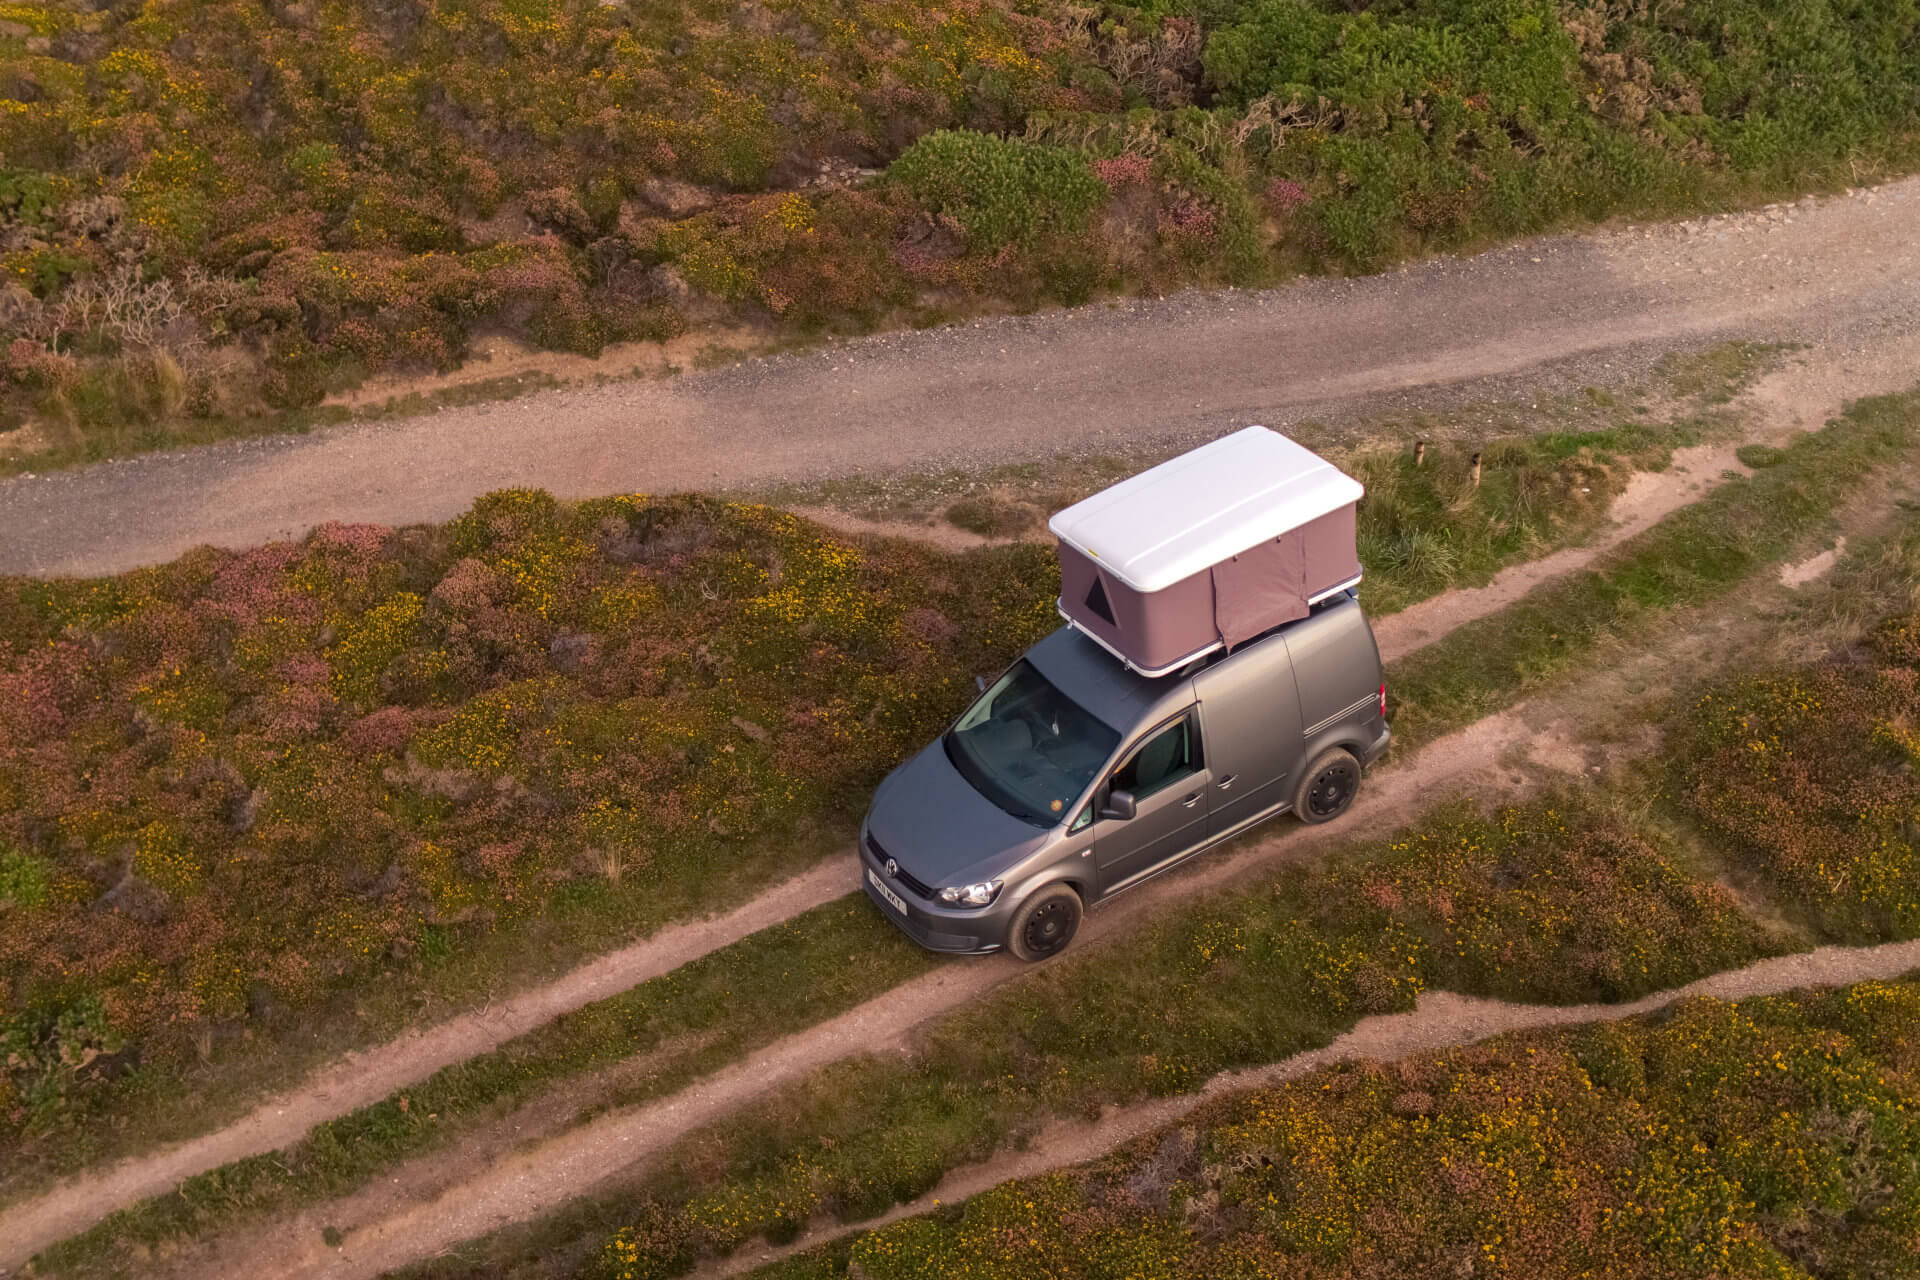 Direct4x4 Accessories UK   Expedition Gear